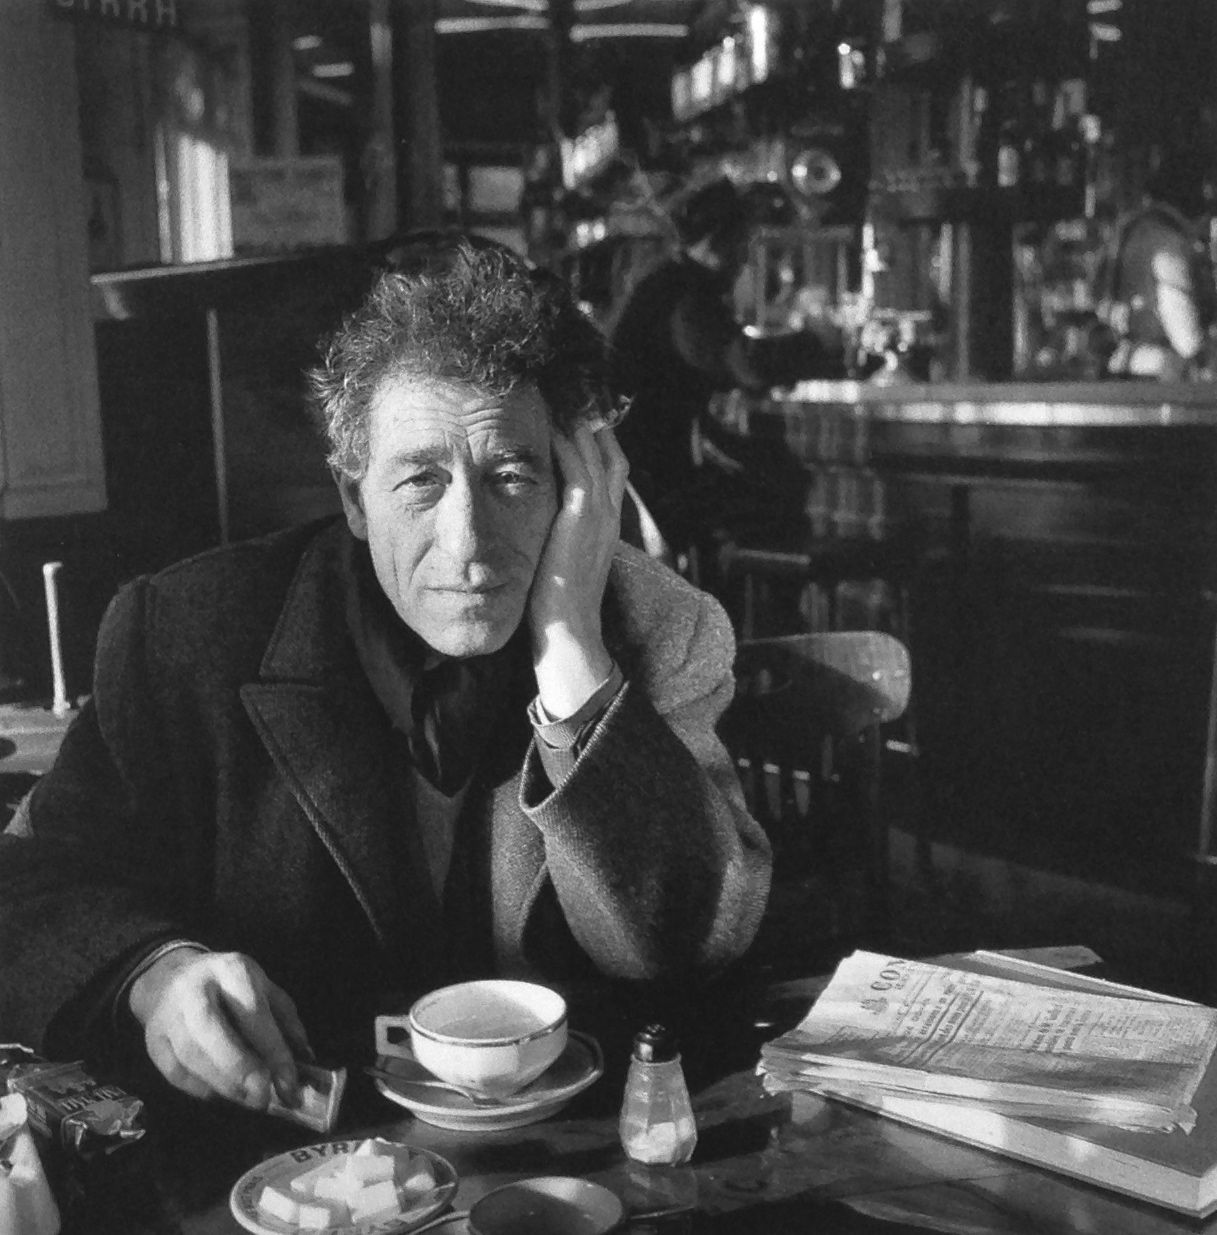 Peintre Giacometti Alberto Giacometti Paris 1958 Photo Robert Doisneau